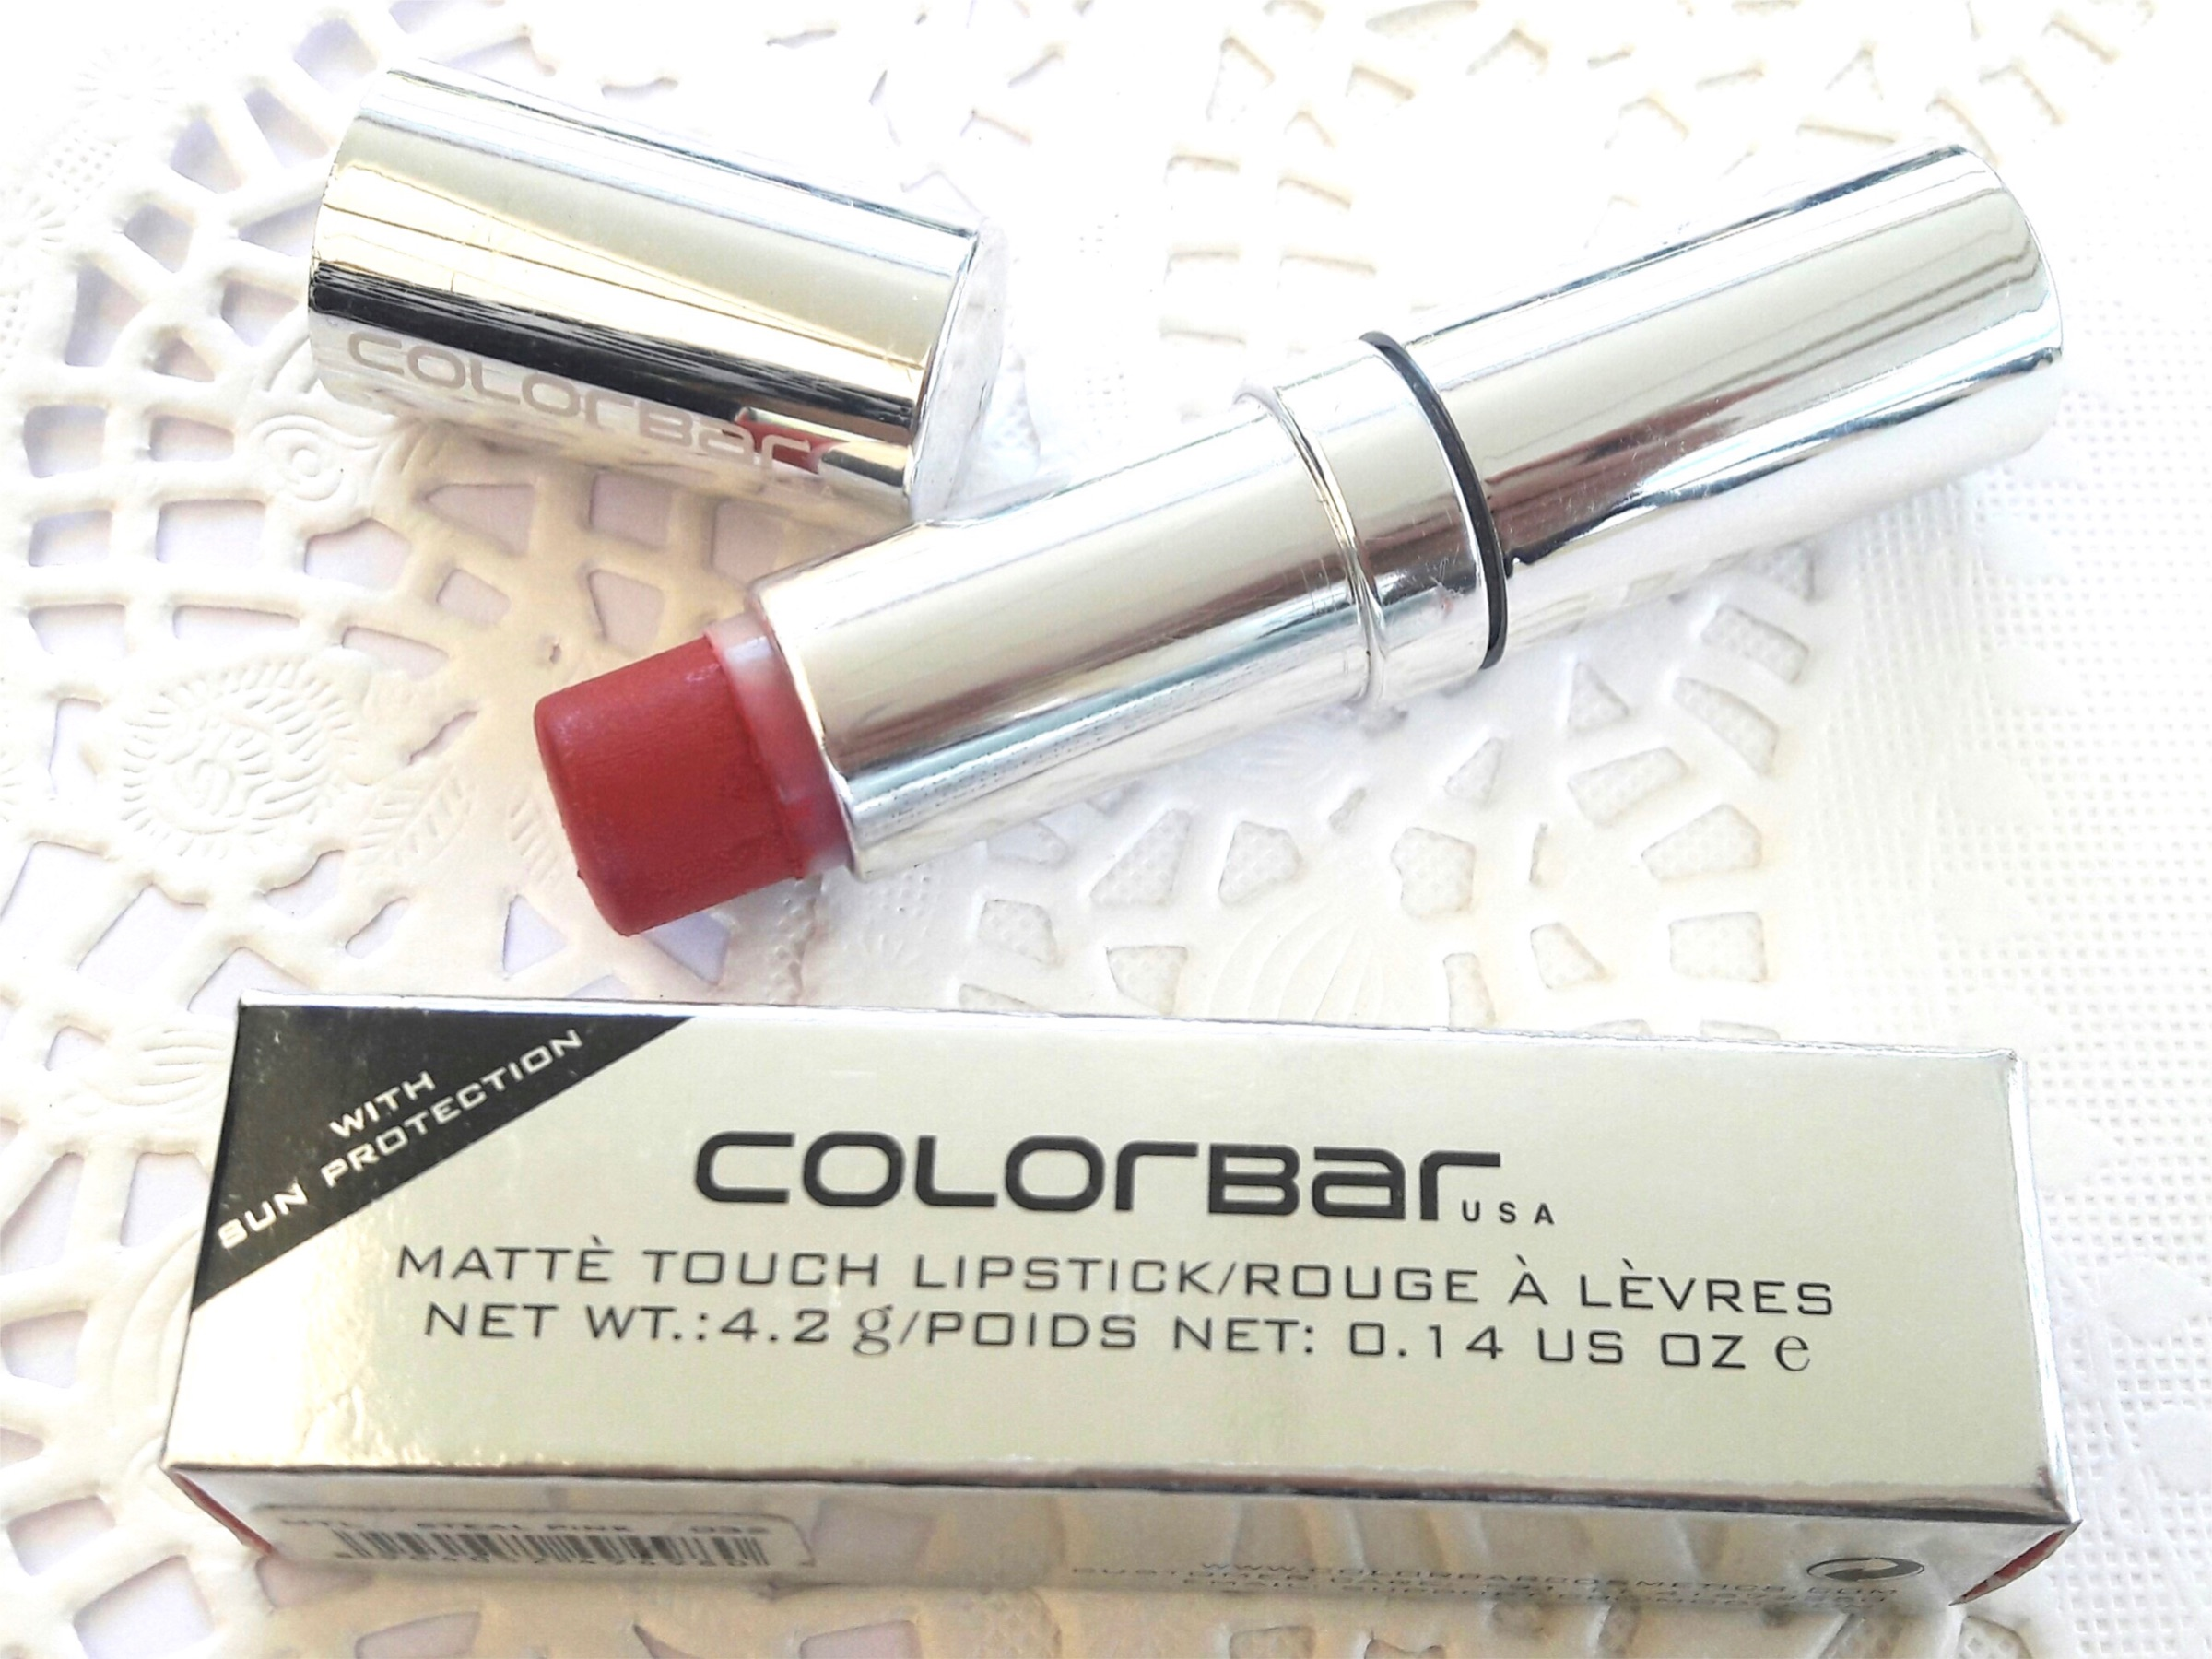 Colorbar Matte Touch Lipstick Steal Pink 32 Review Swatches